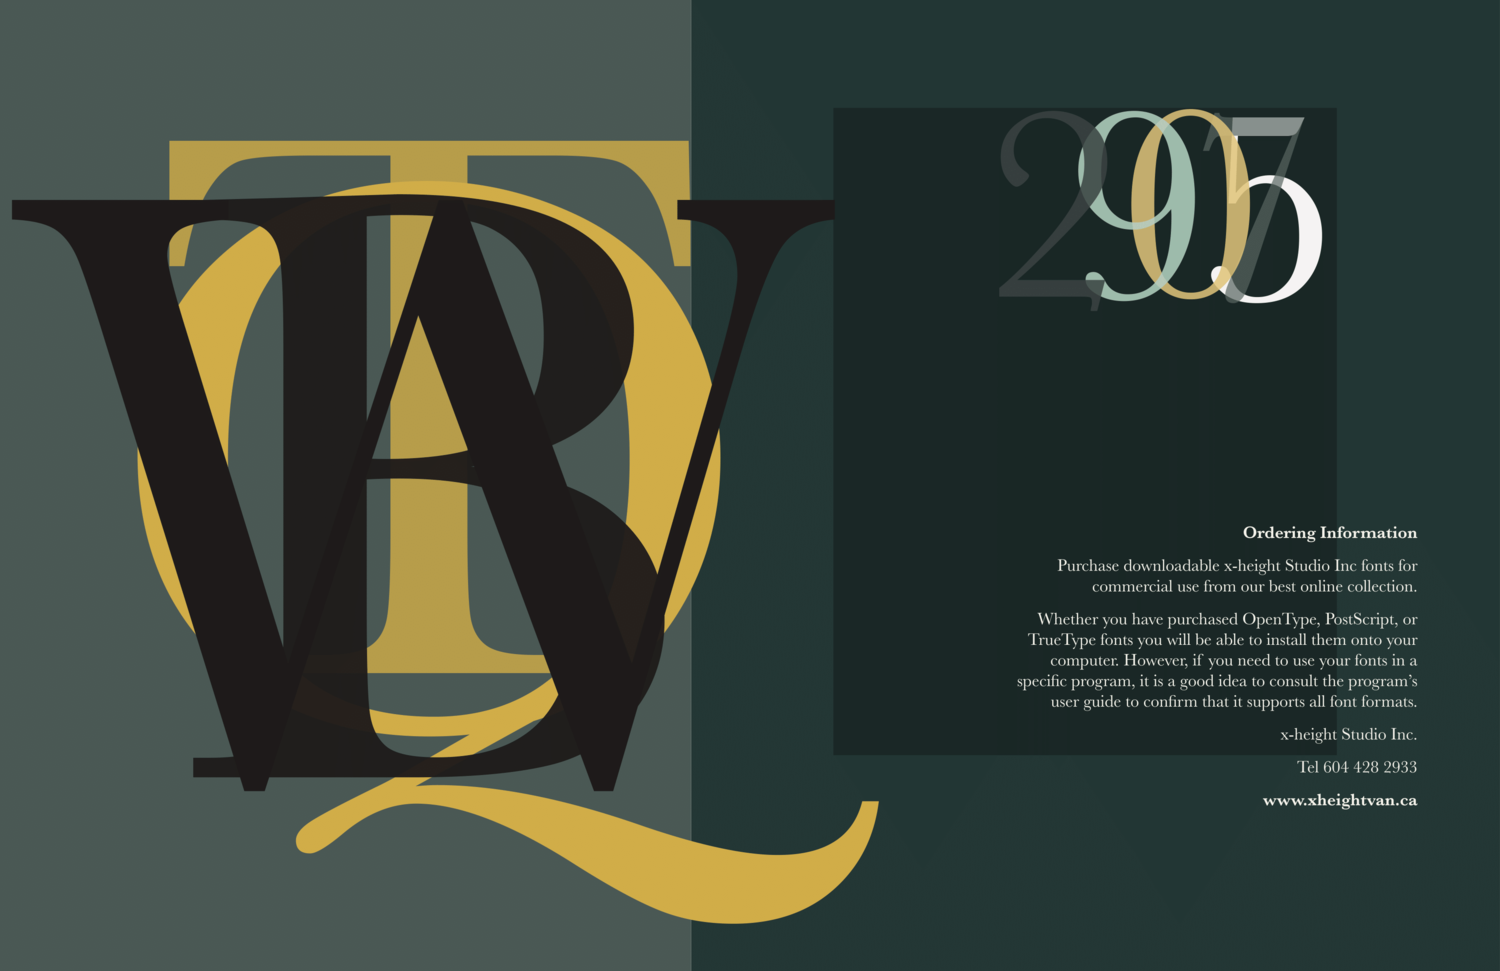 Baskerville Typeface — Welcome to Sean Marsden